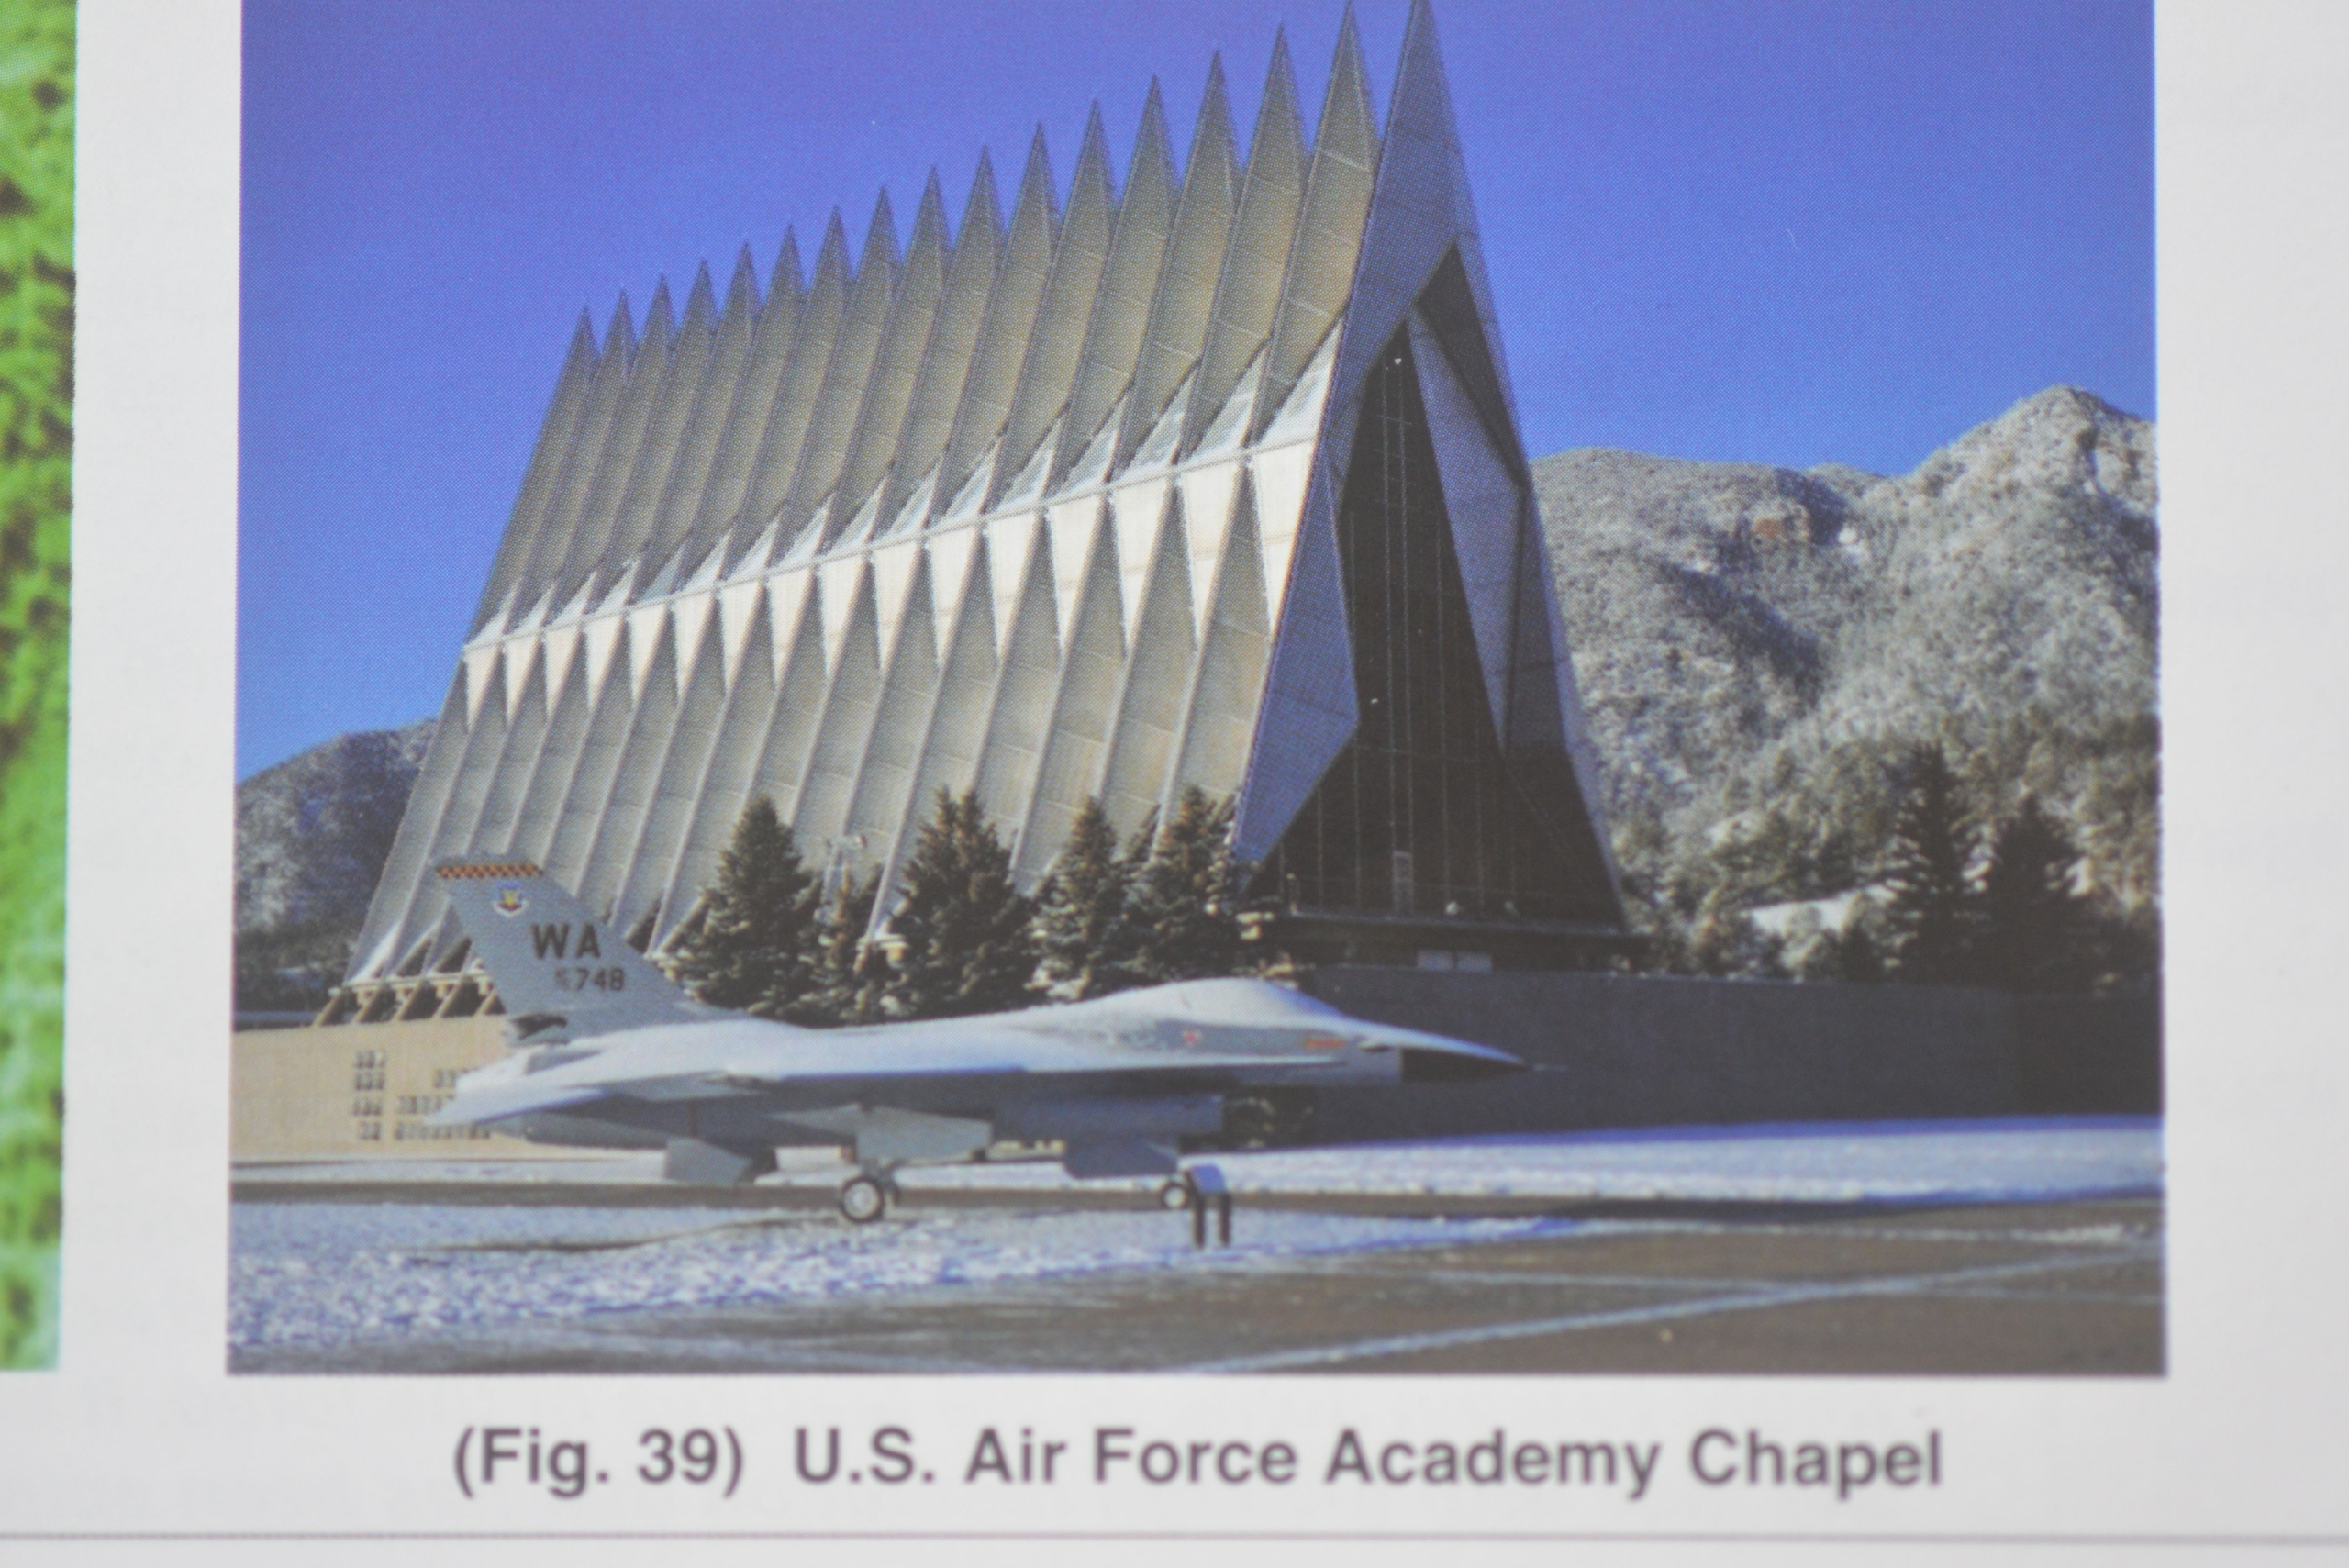 Photo 1. US Air Force Academy Chapel